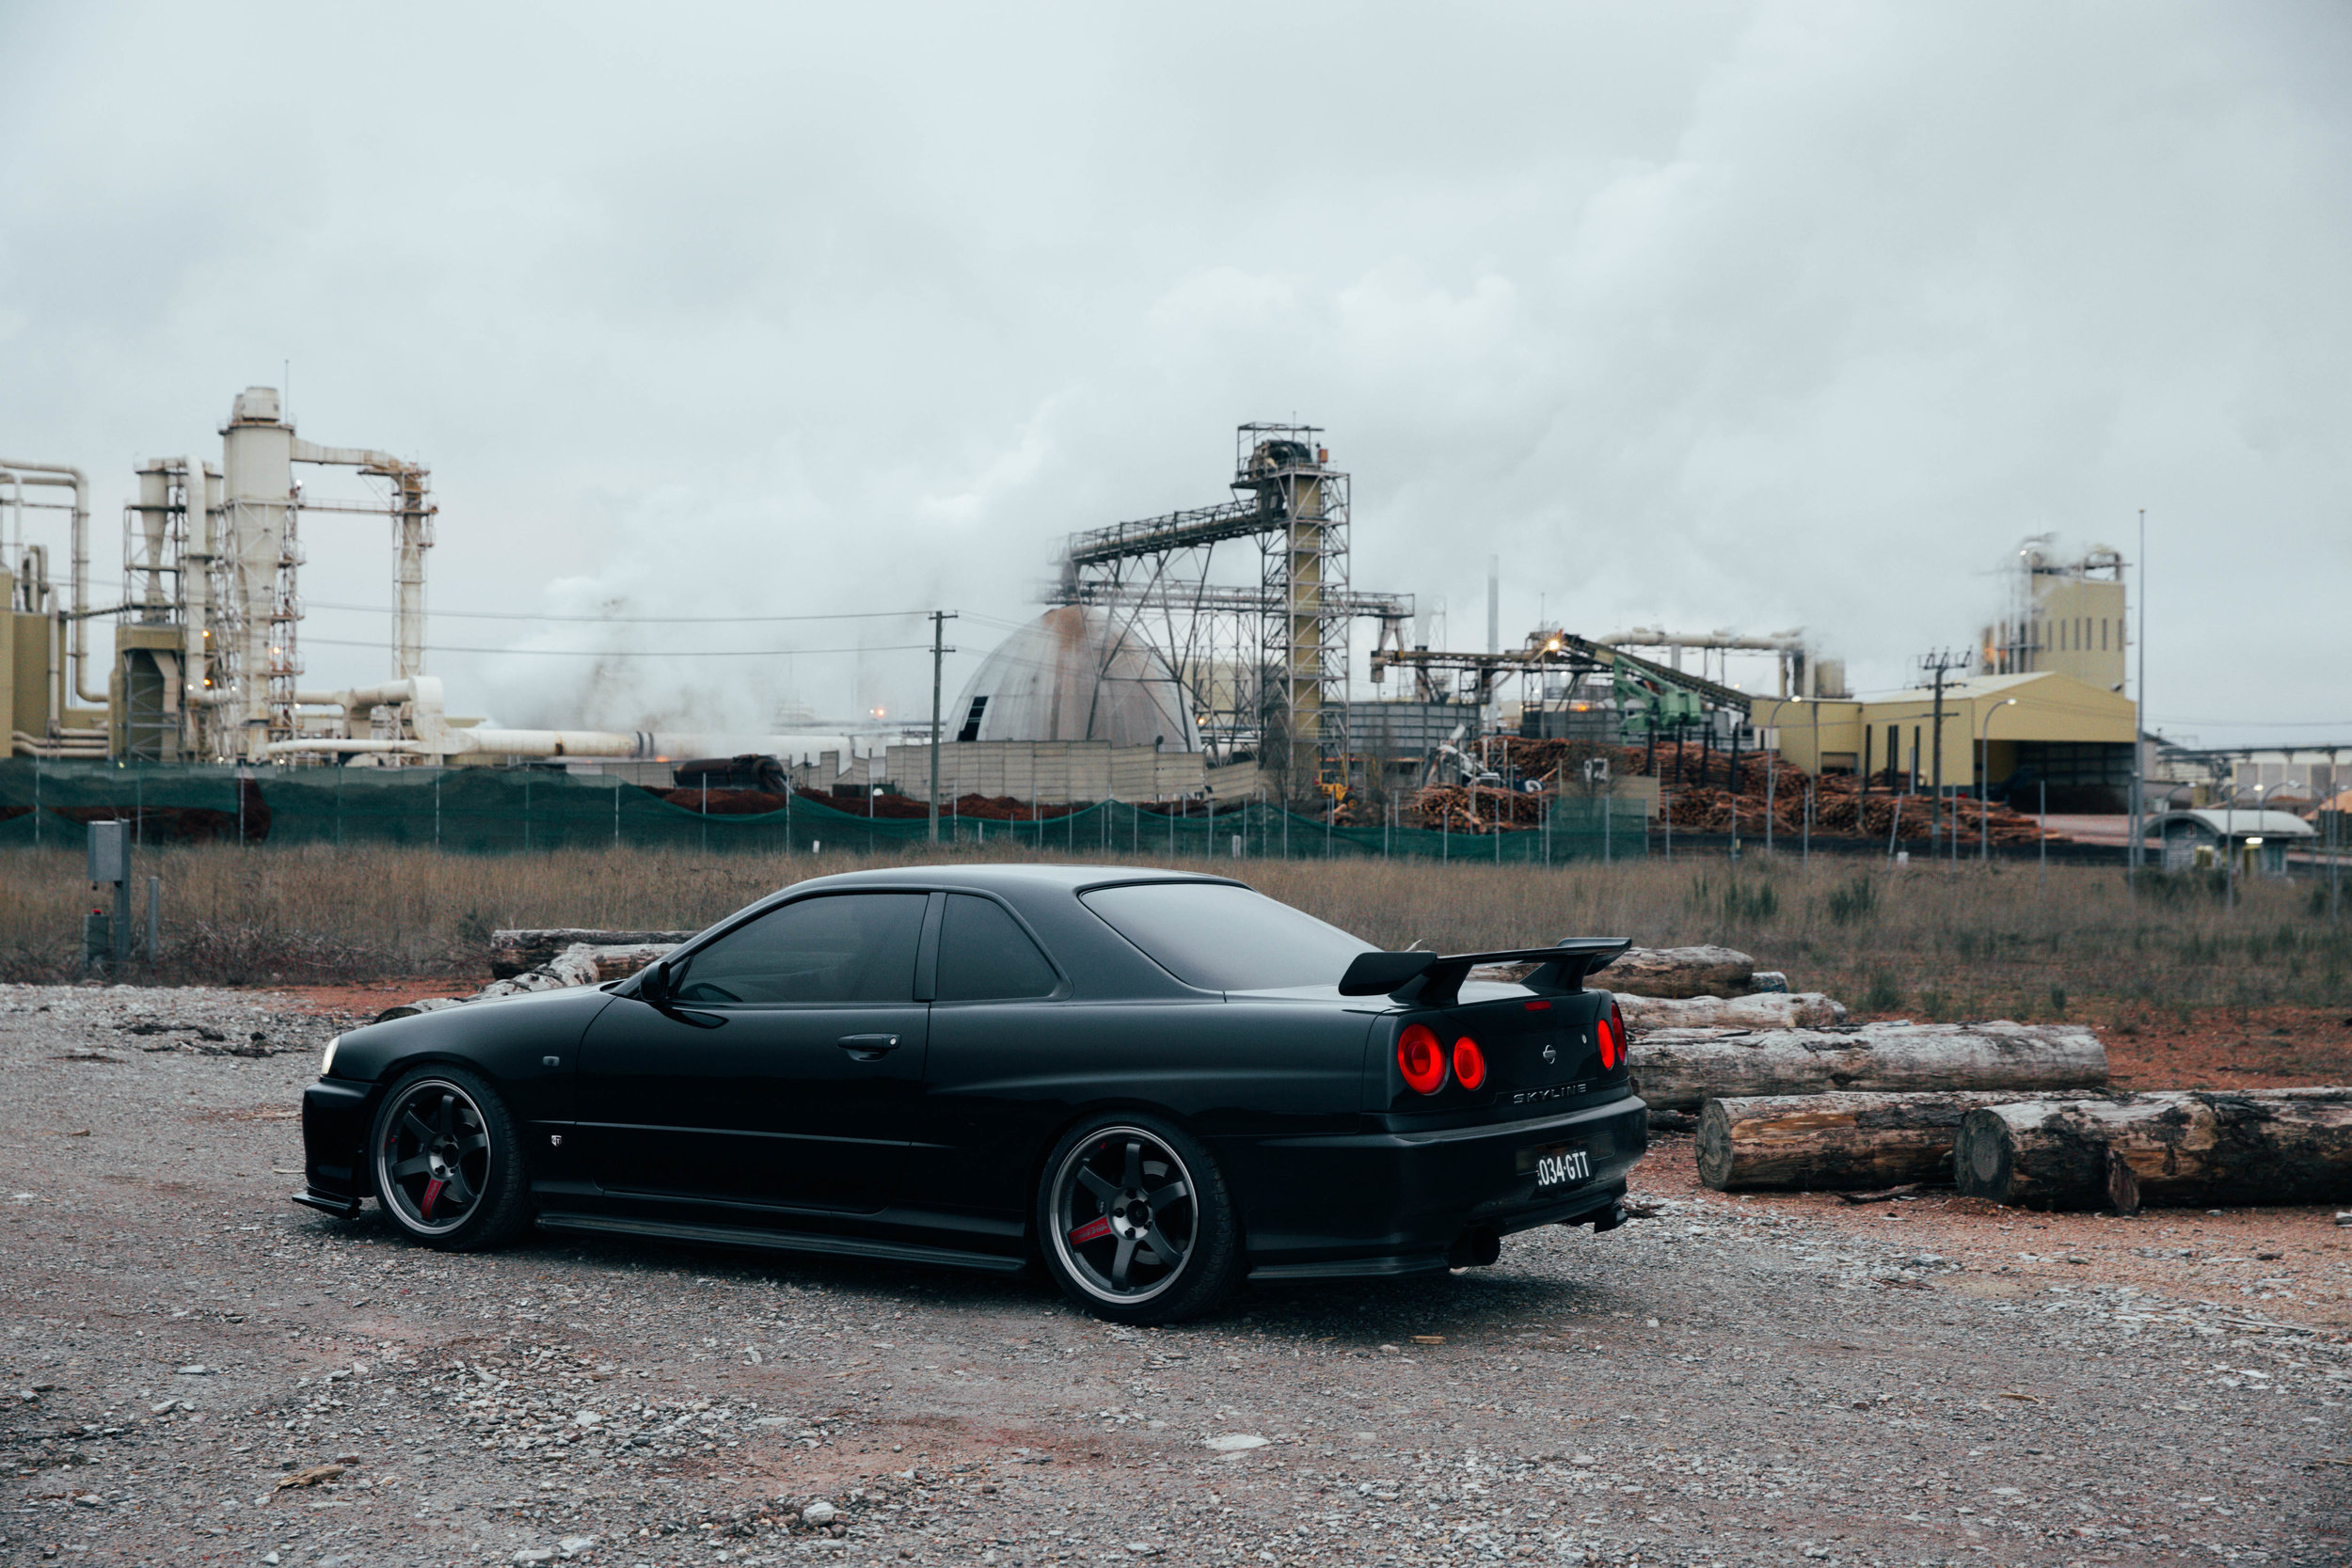 I love how raw my car looks,. Huge sucker for industrial parks!